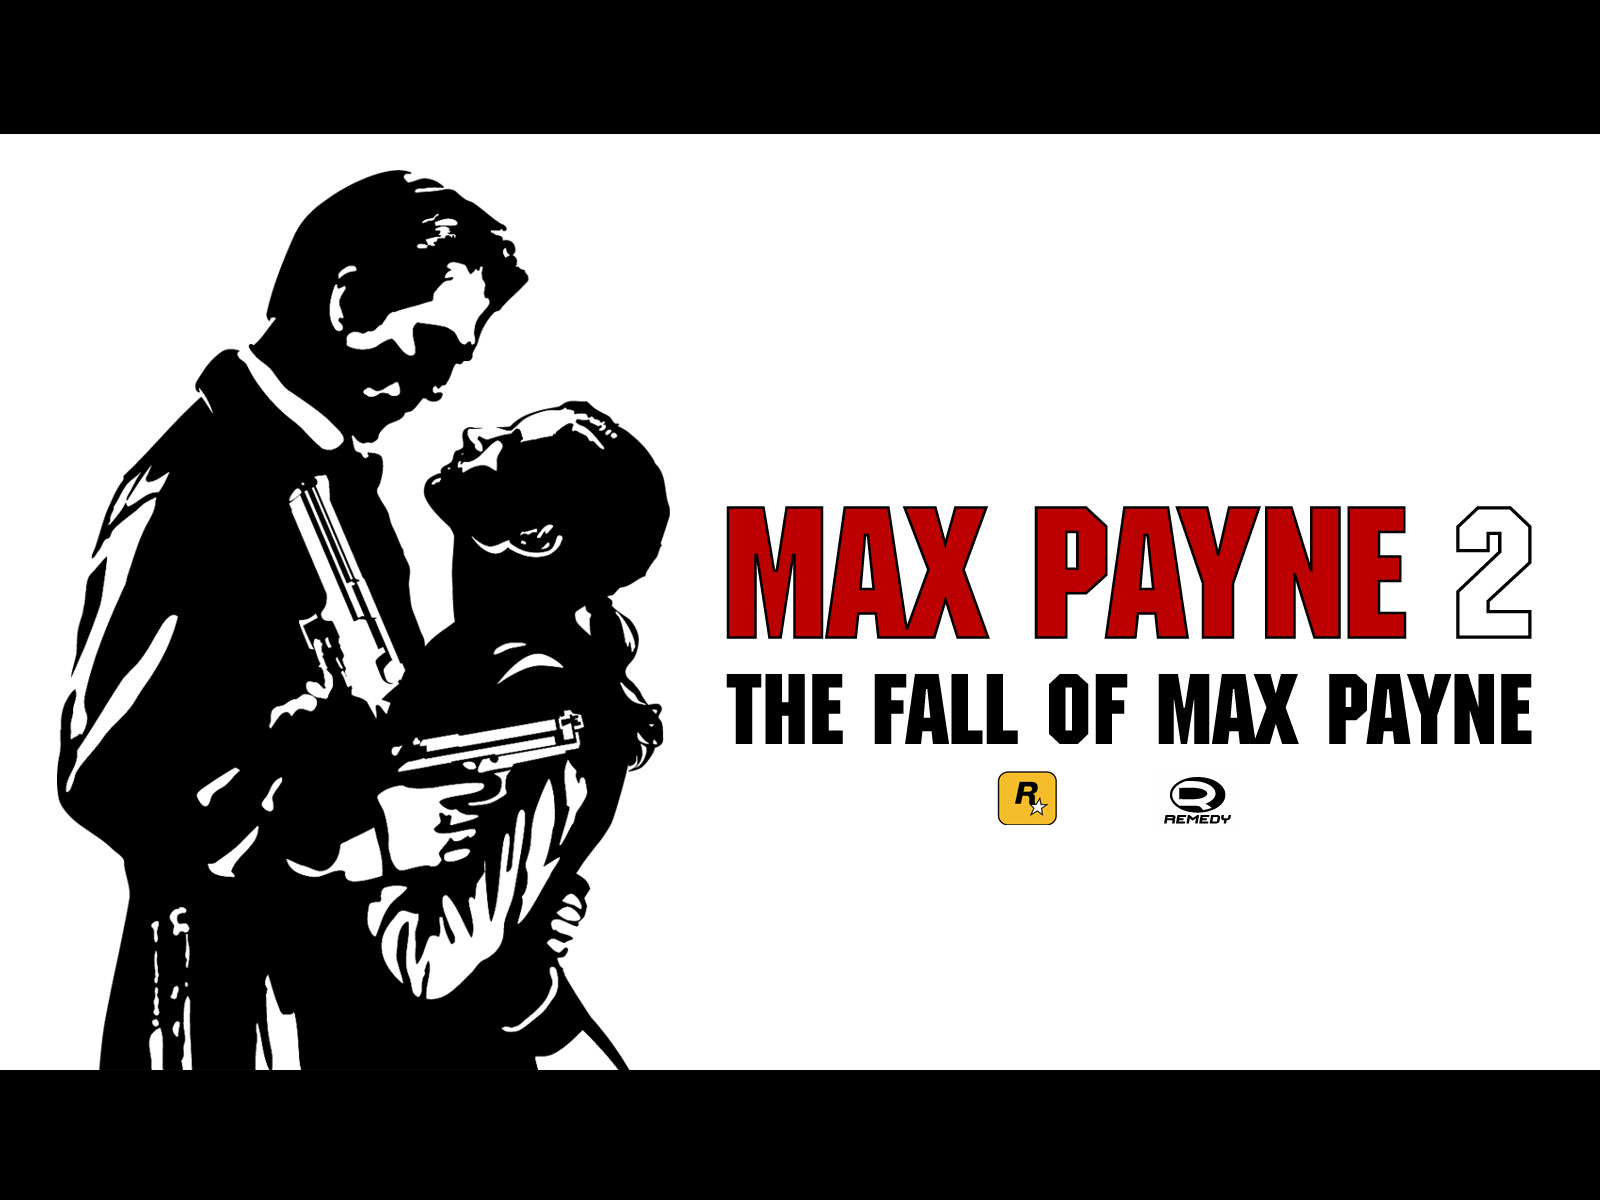 How-To-Install-Max-Payne-2-Game-Without-Errors.jpg